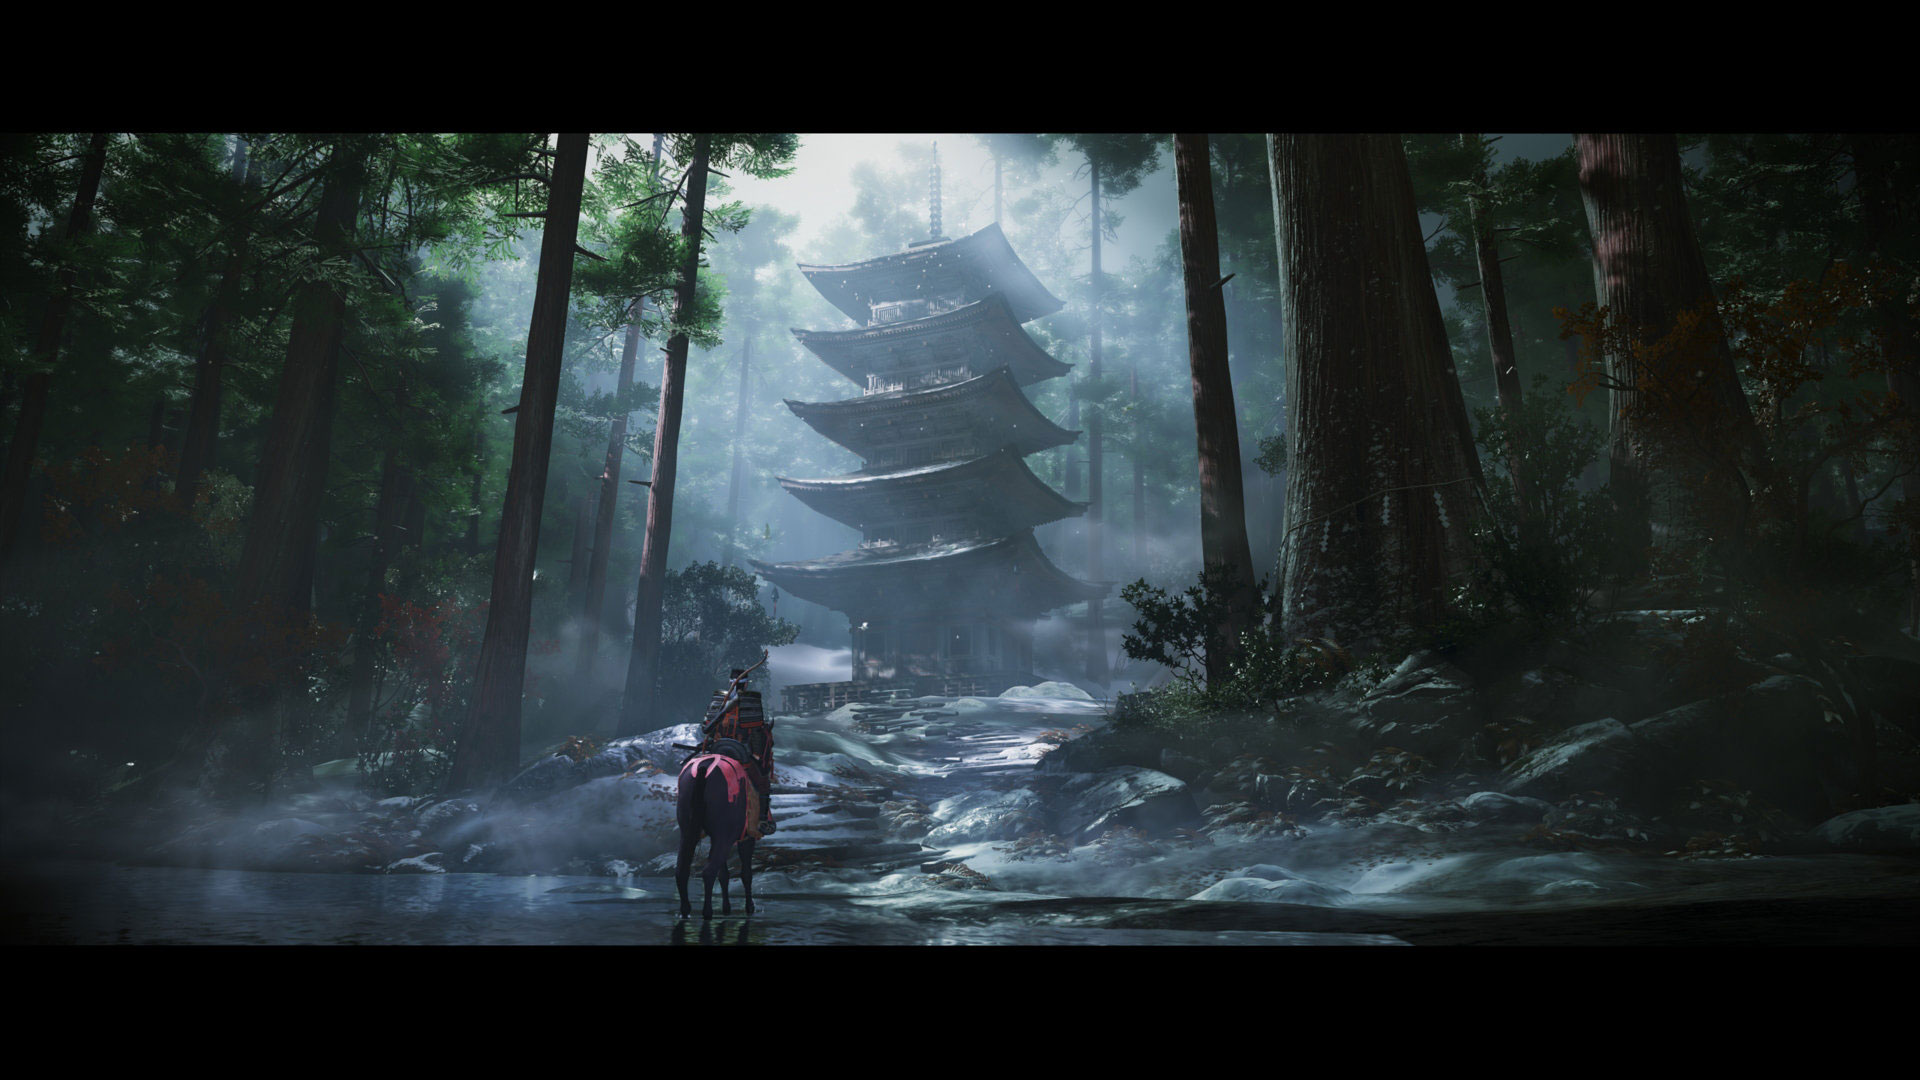 Ghost of Tsushima (Sucker Punch)